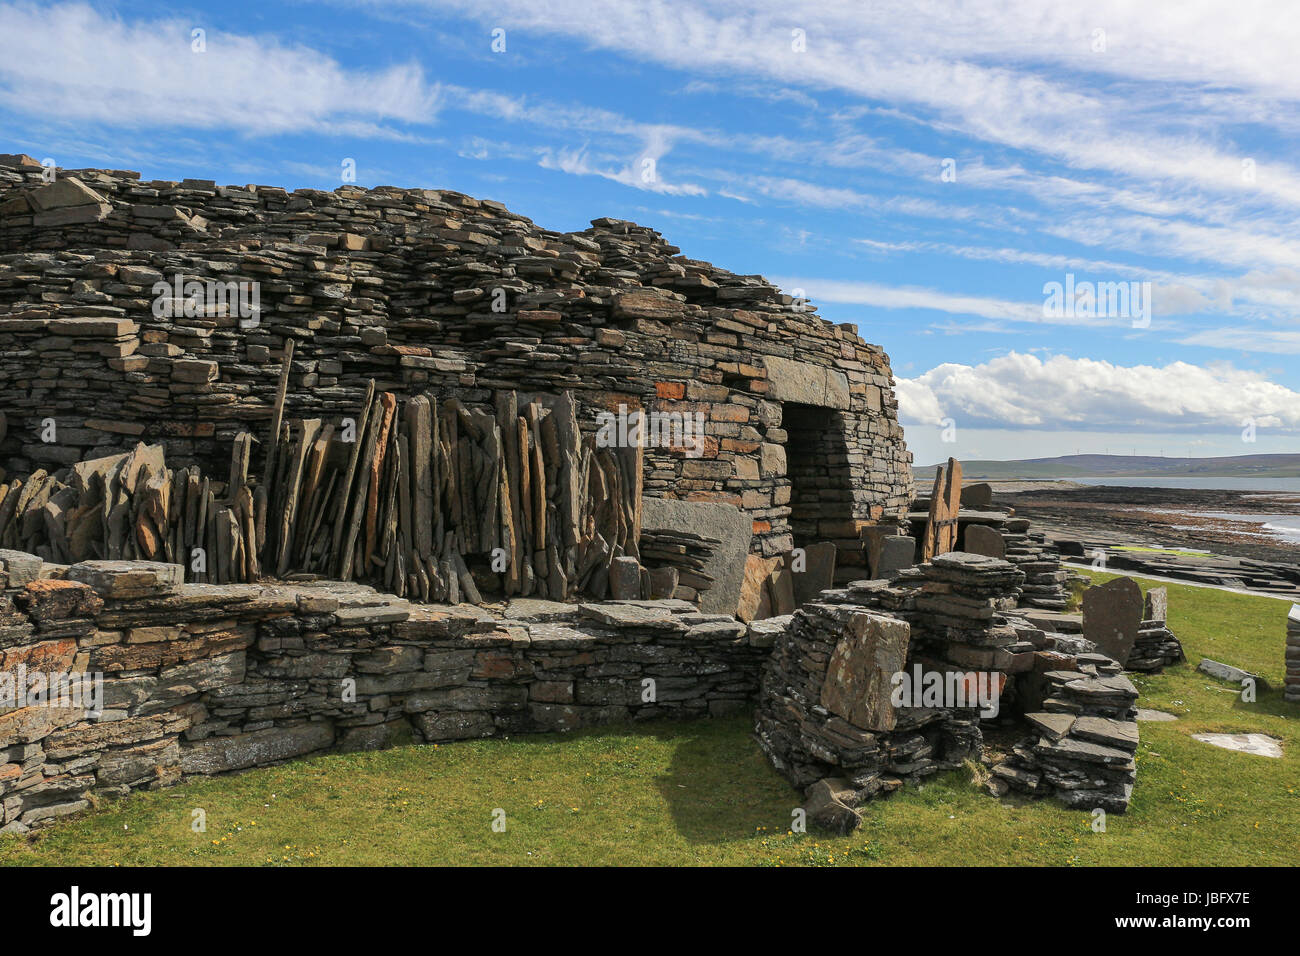 The Iron Age Midhowe Broch on Rousay Island, Orkney, was construc-ted over 2000 years ago from huge sandstone slabs - Stock Image